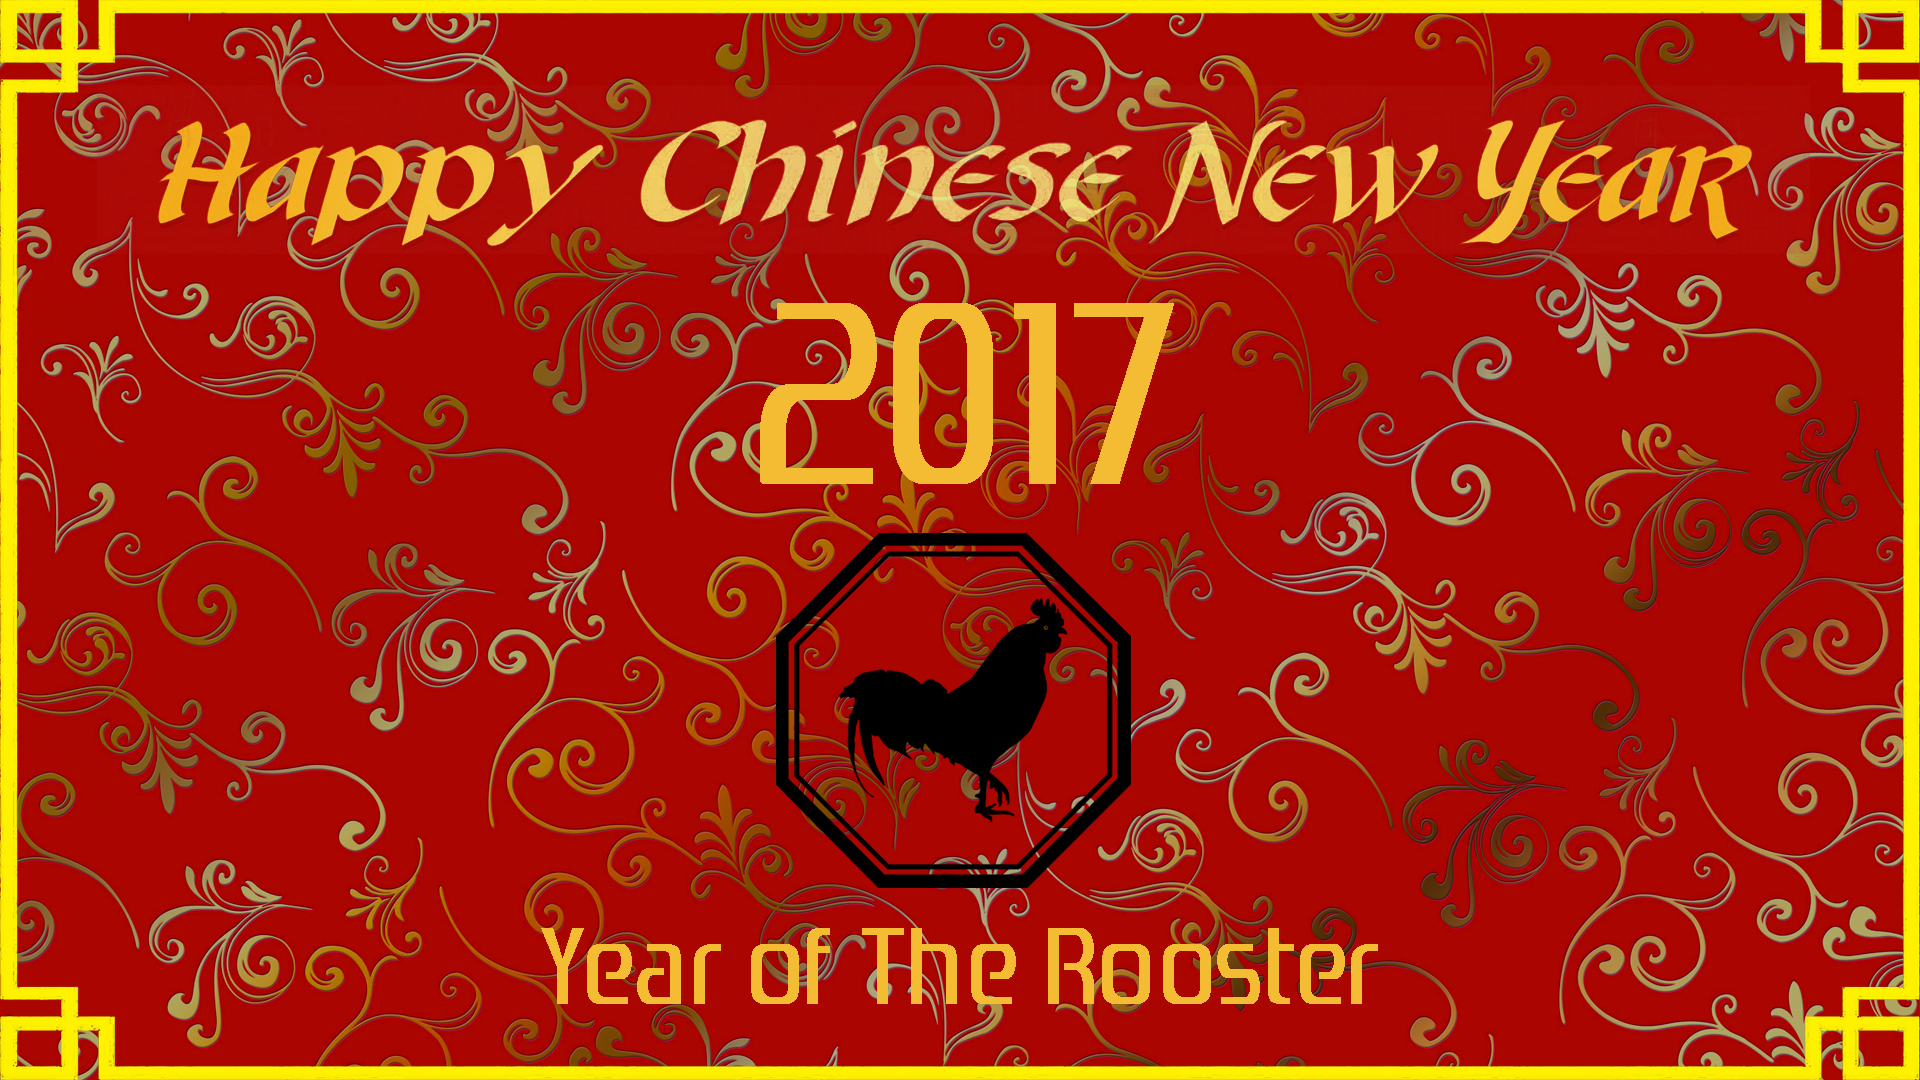 Chinese New Year 2017 Wallpaper Of The Rooster